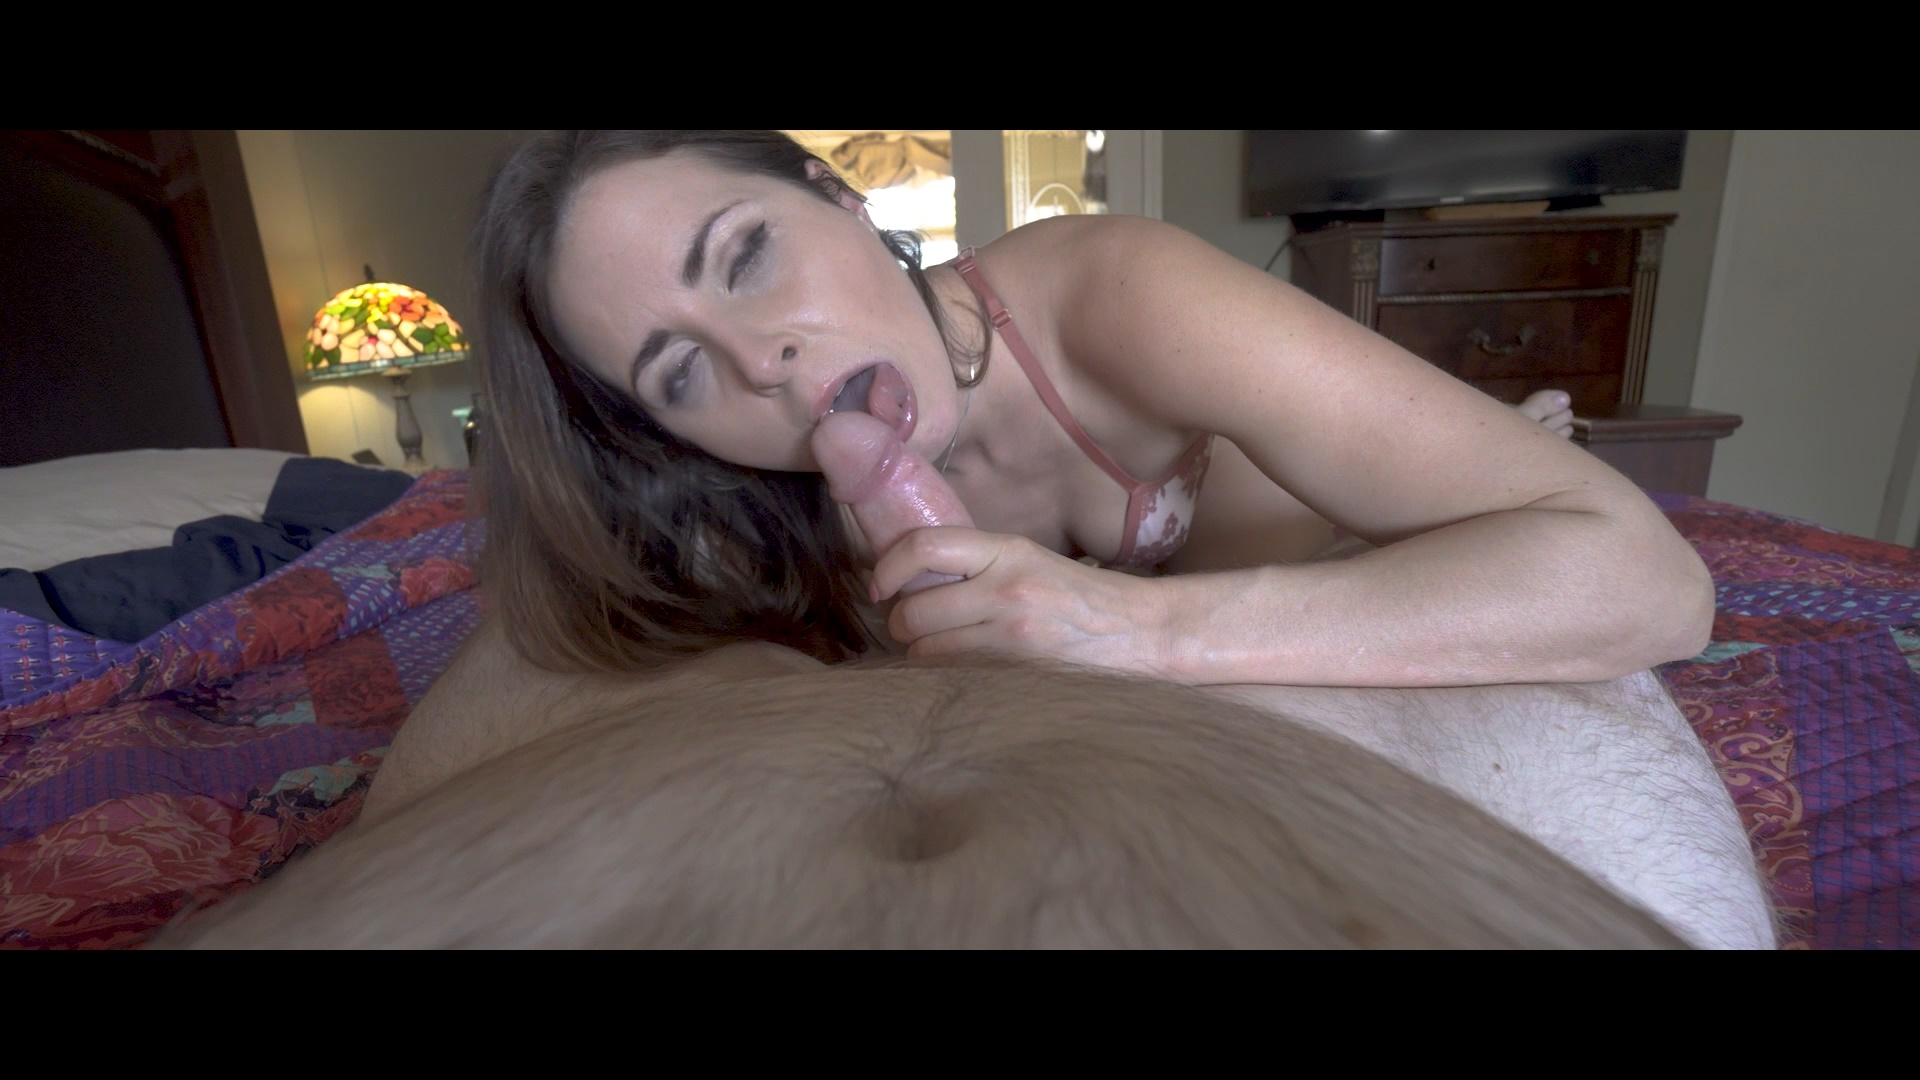 Porn milf torrents price lessons skylar does plan? Yes